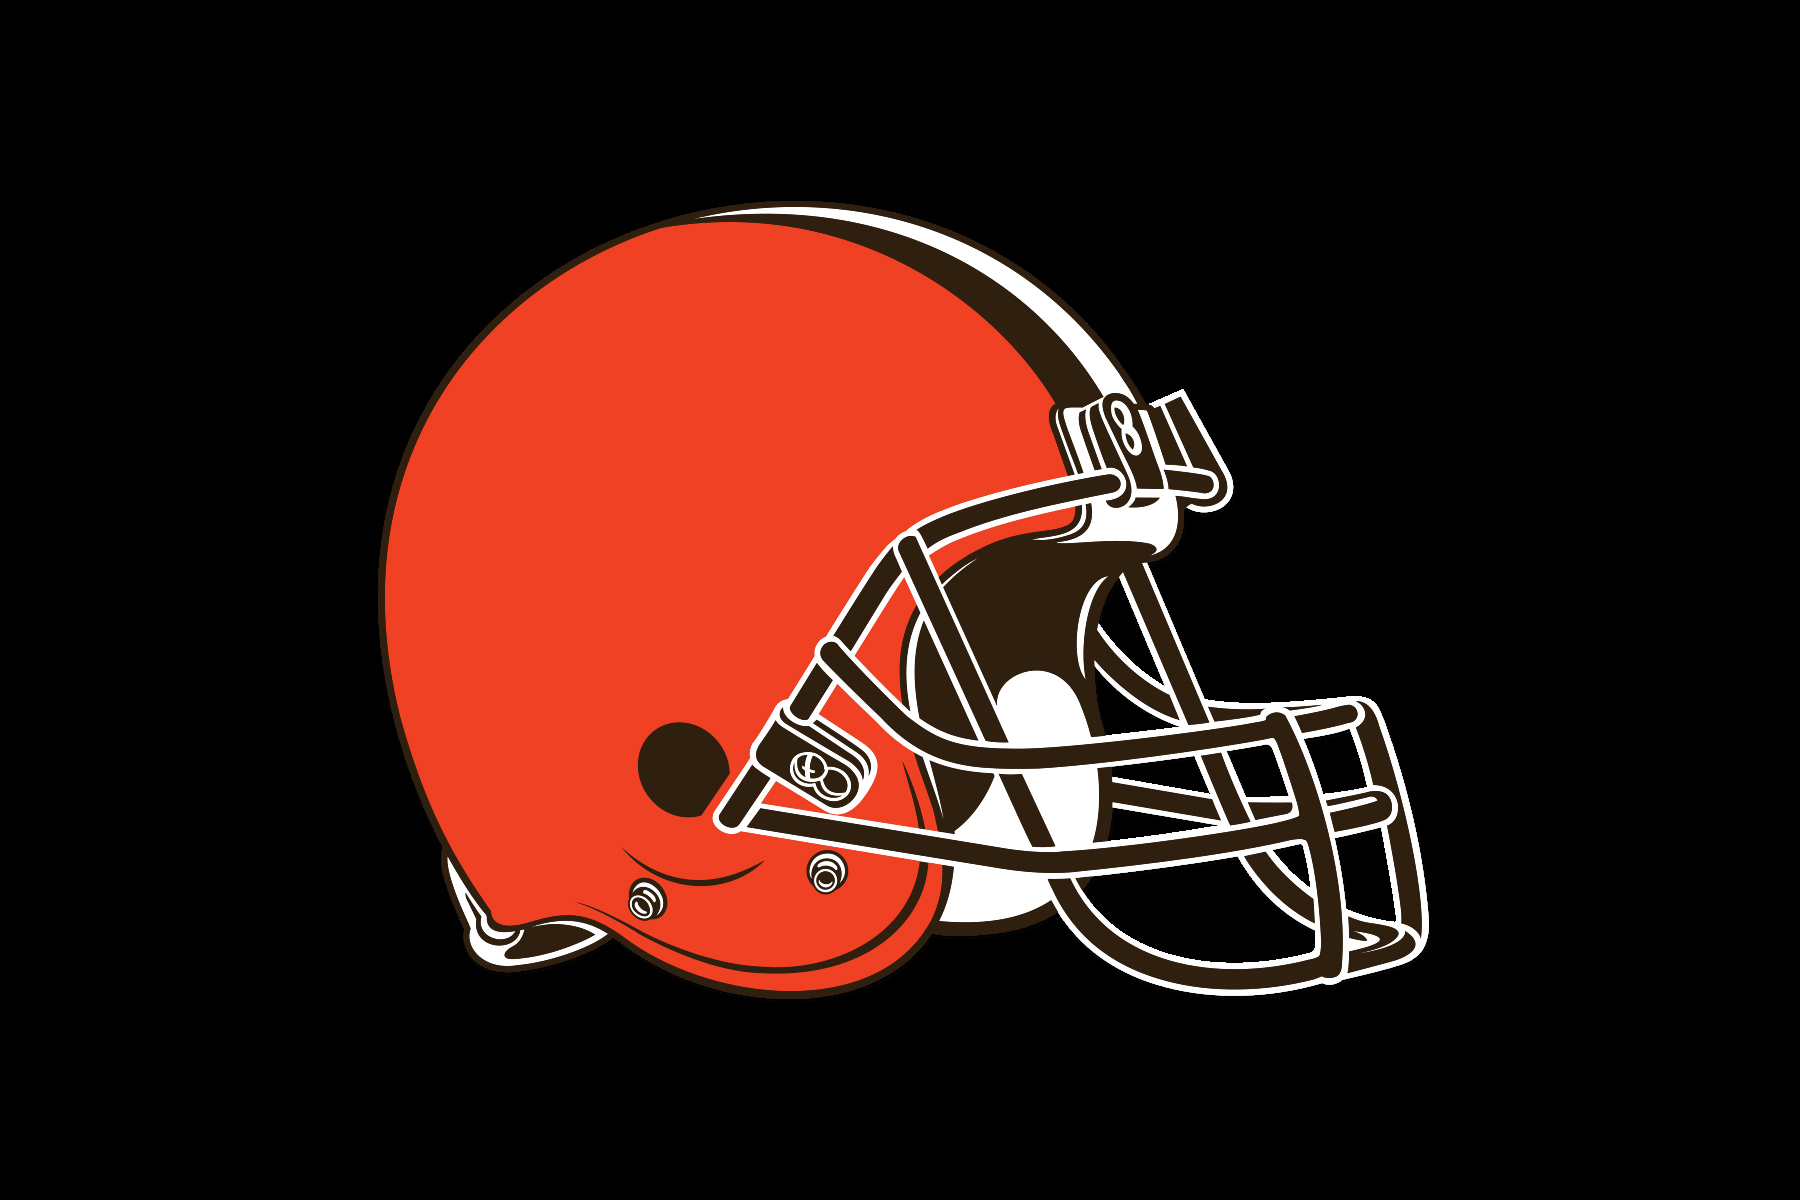 Browns Logo, Browns Symbol Meaning, History and Evolution